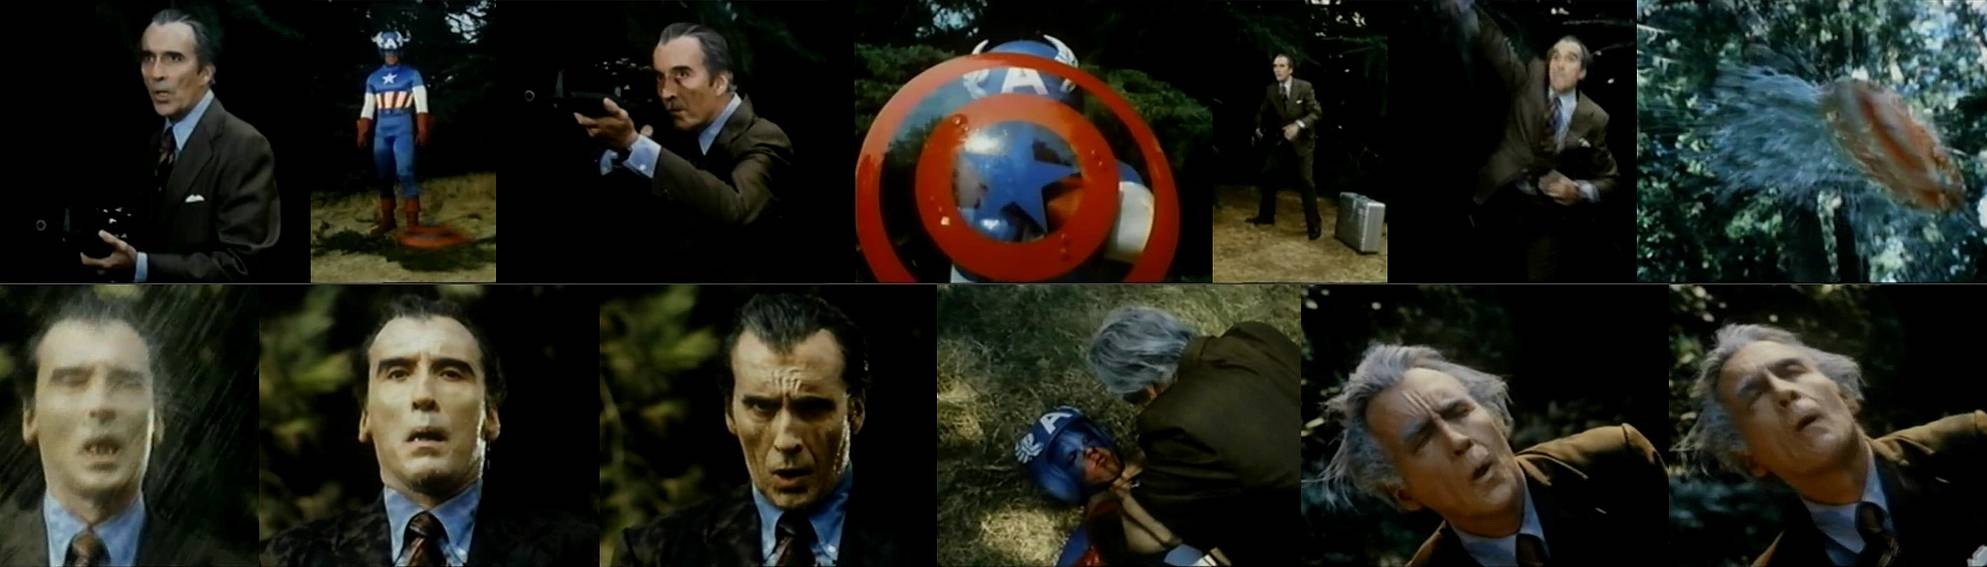 Captain America 2 Death Too Soon2  Rapid adult unseen aging gas   male OA scene. Captain America